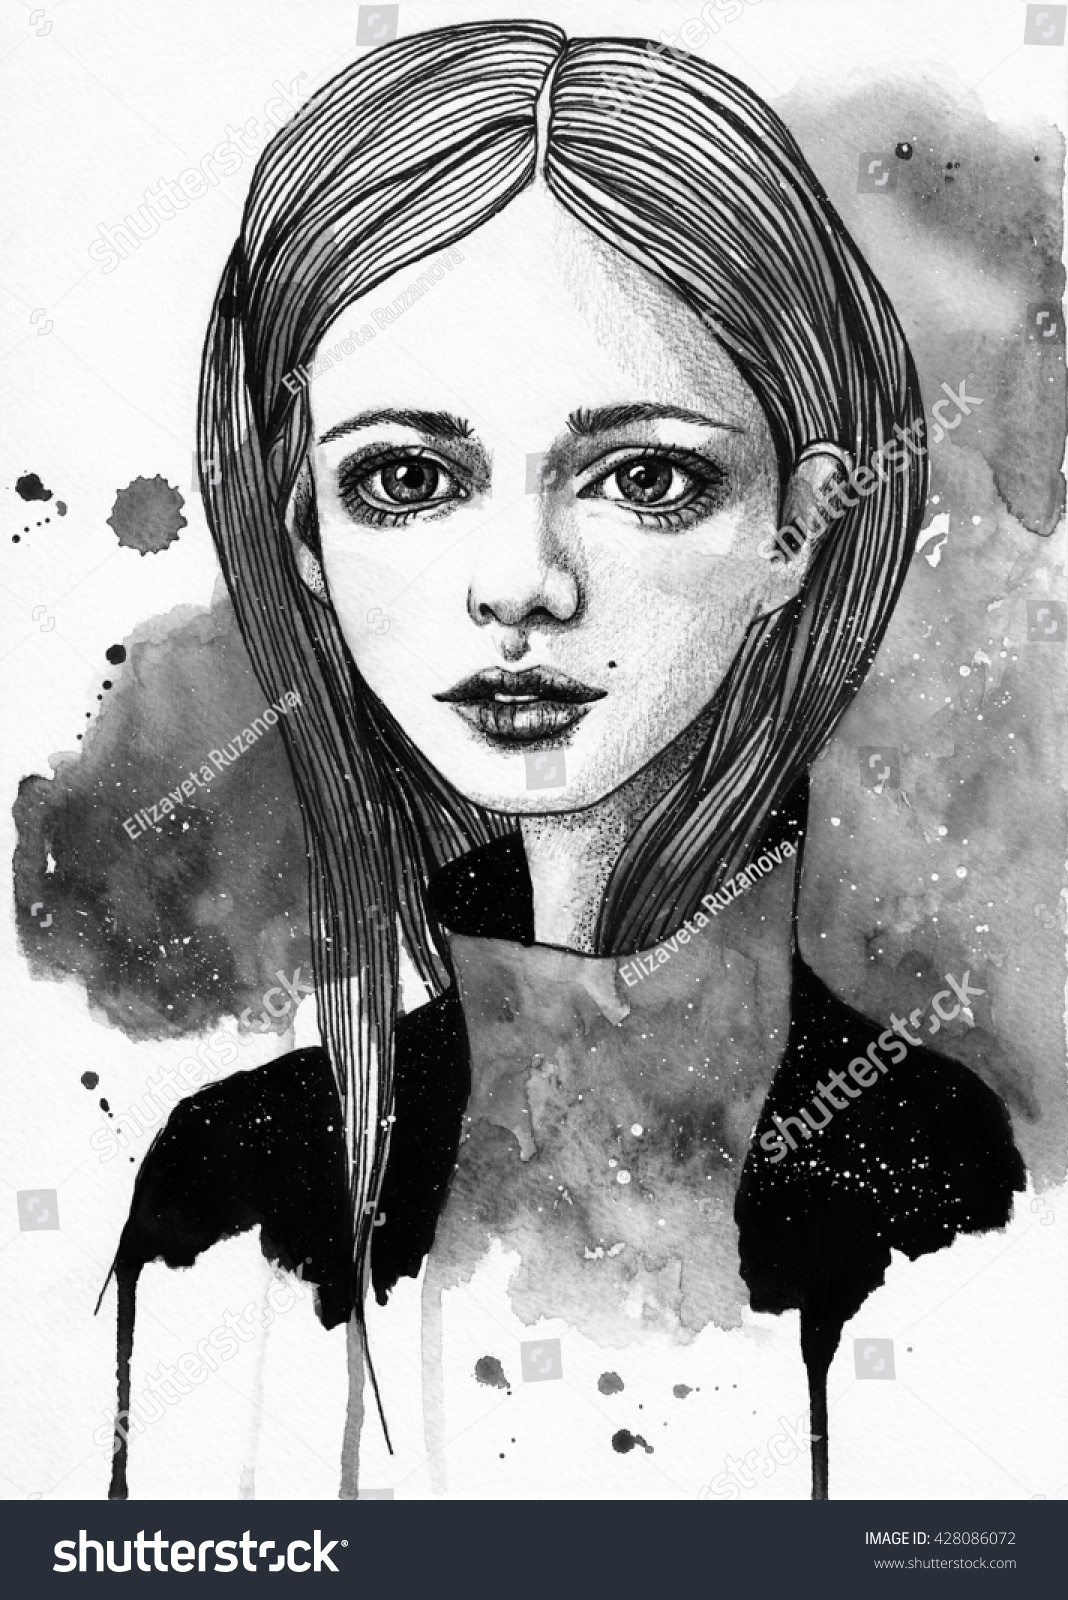 Portrait of a beautiful girl sketch fashion black and white illustration on watercolor cosmic